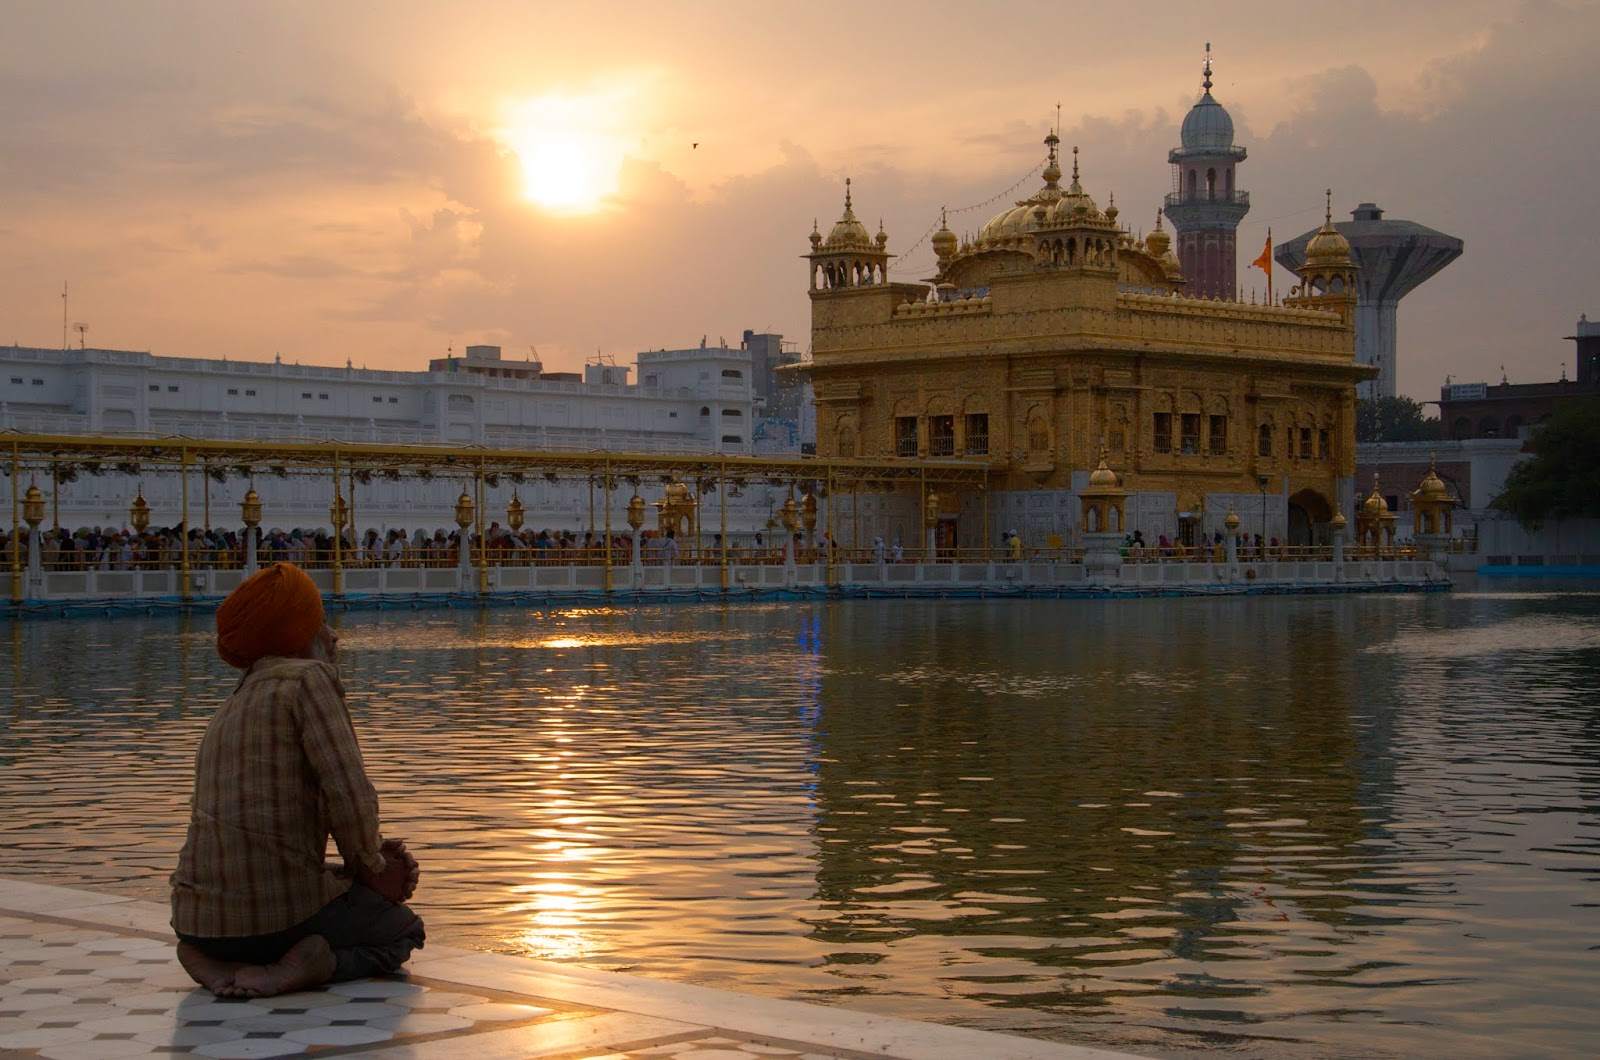 Great Car Wallpapers Bombayjules Scenes From The Golden Temple Amritsar